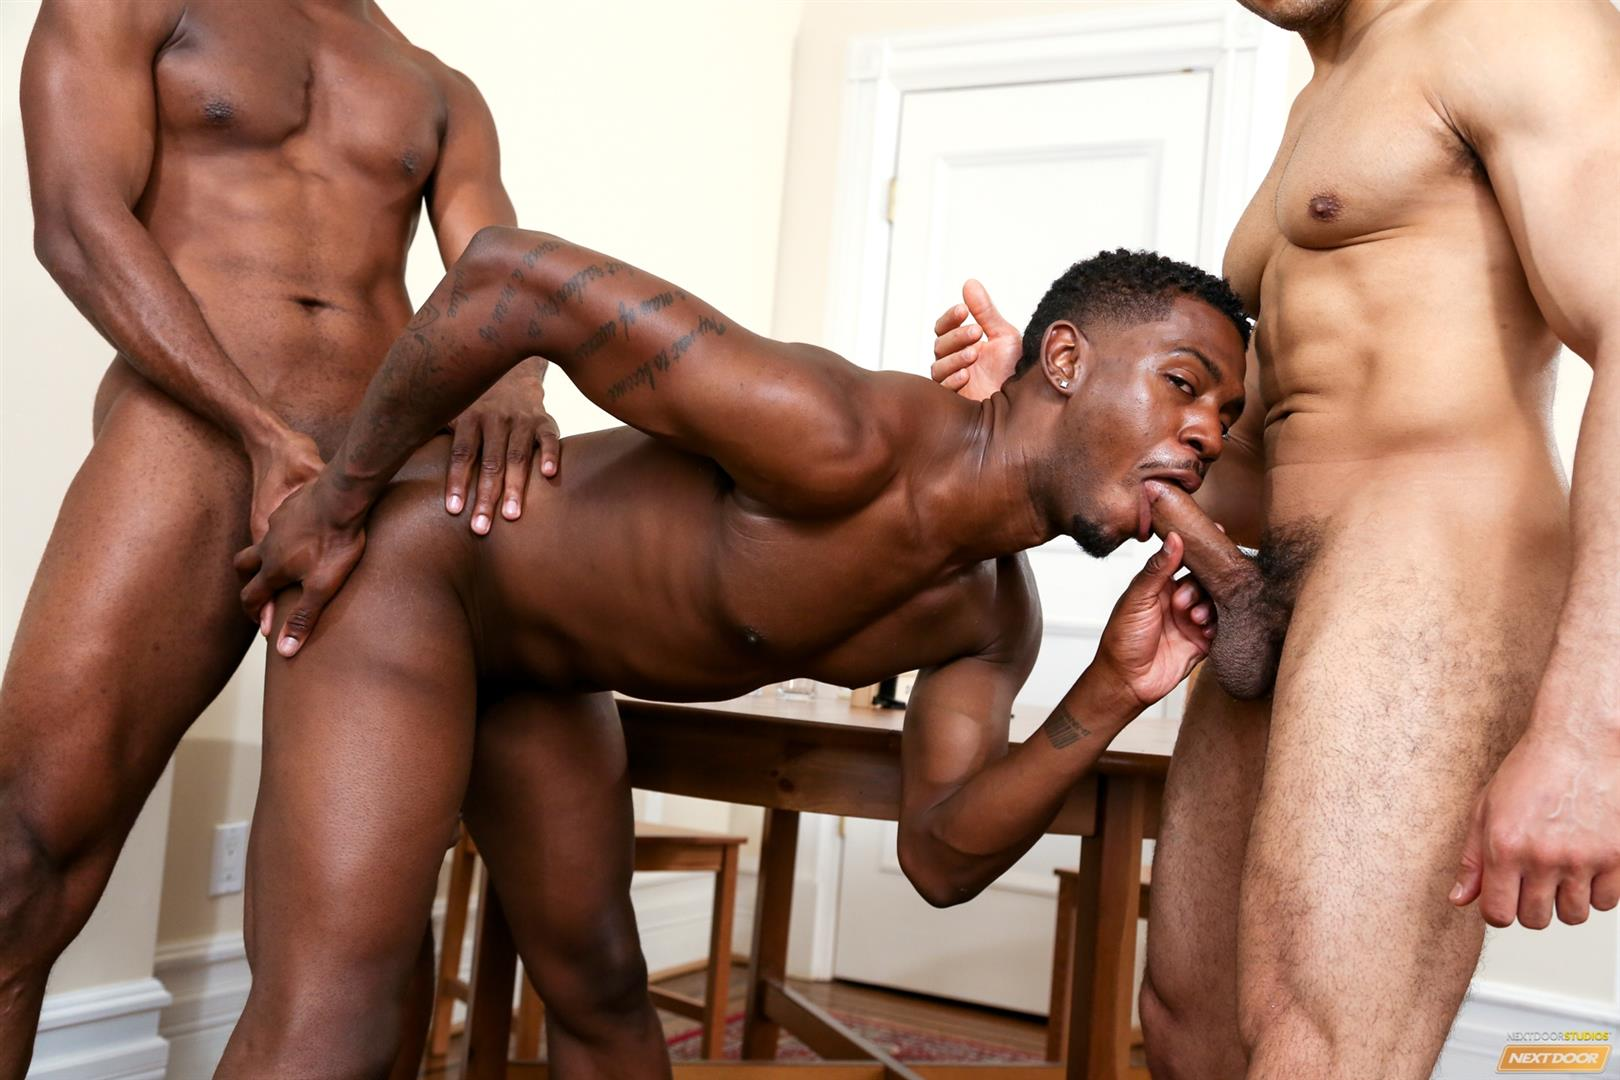 Next Door Ebony Krave Moore and Andre Donovan and Rex Cobra Big Black Cock Amateur Gay Porn 11